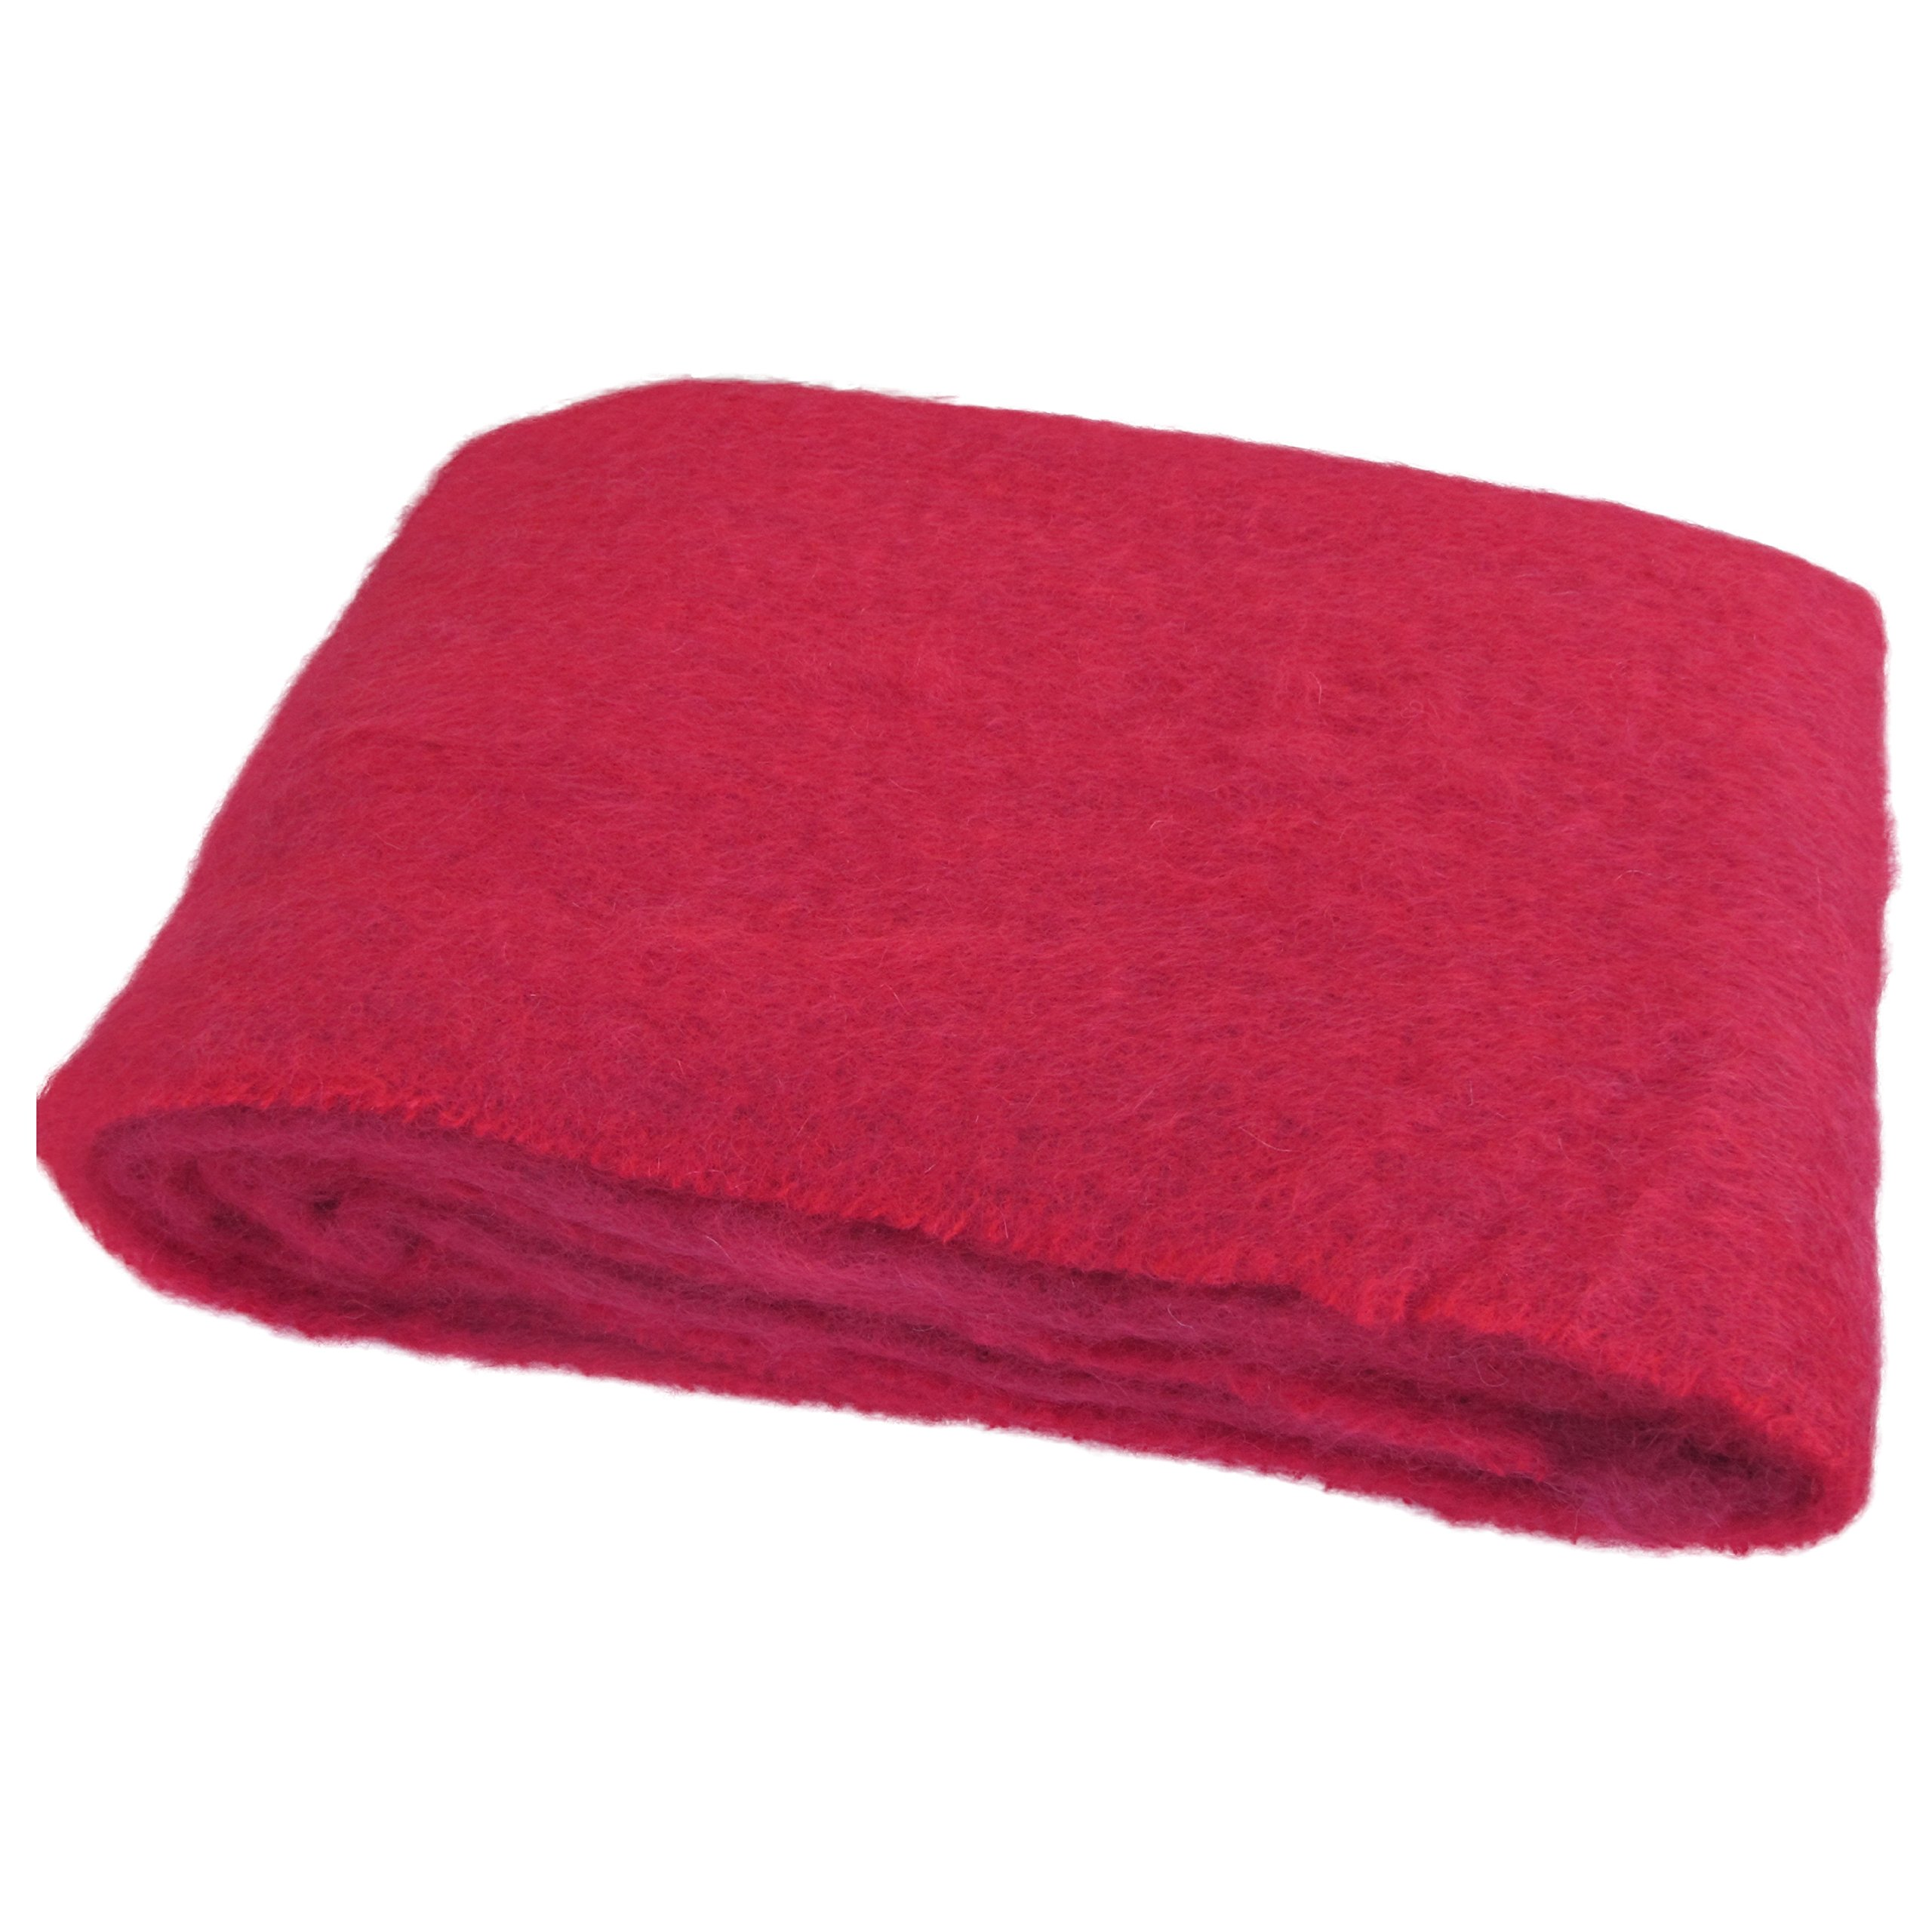 "Large Brushed Mohair Throw by Cushendale Woollen Mills Ireland. Super Soft Decorative Irish Wool Blanket 54""x 72"" (Red)"